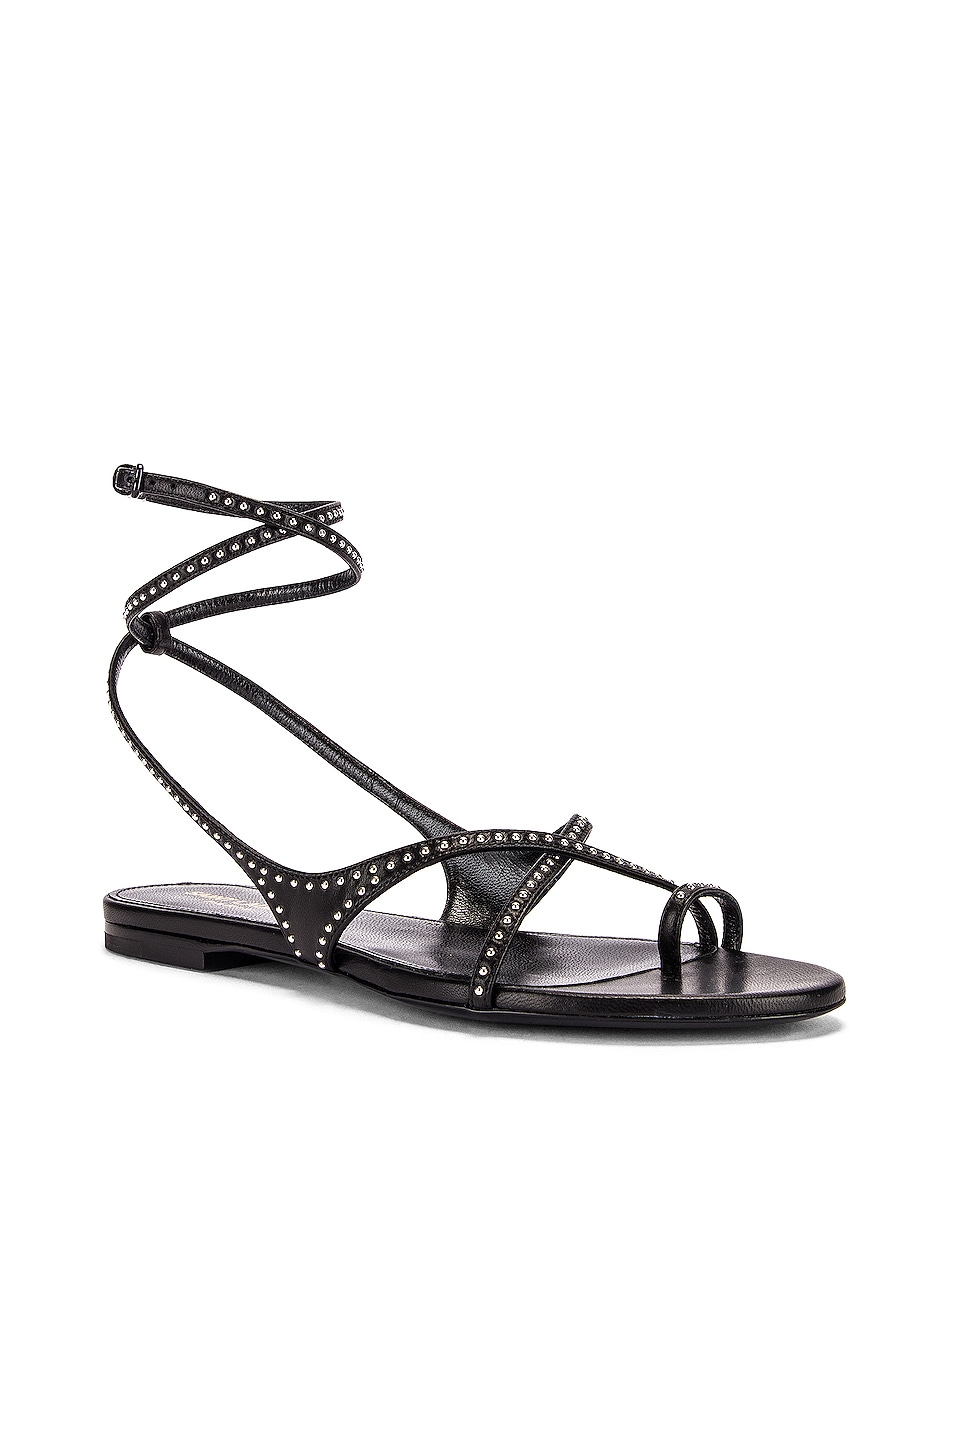 Image 2 of Saint Laurent Gia Ankle Sandals in Black